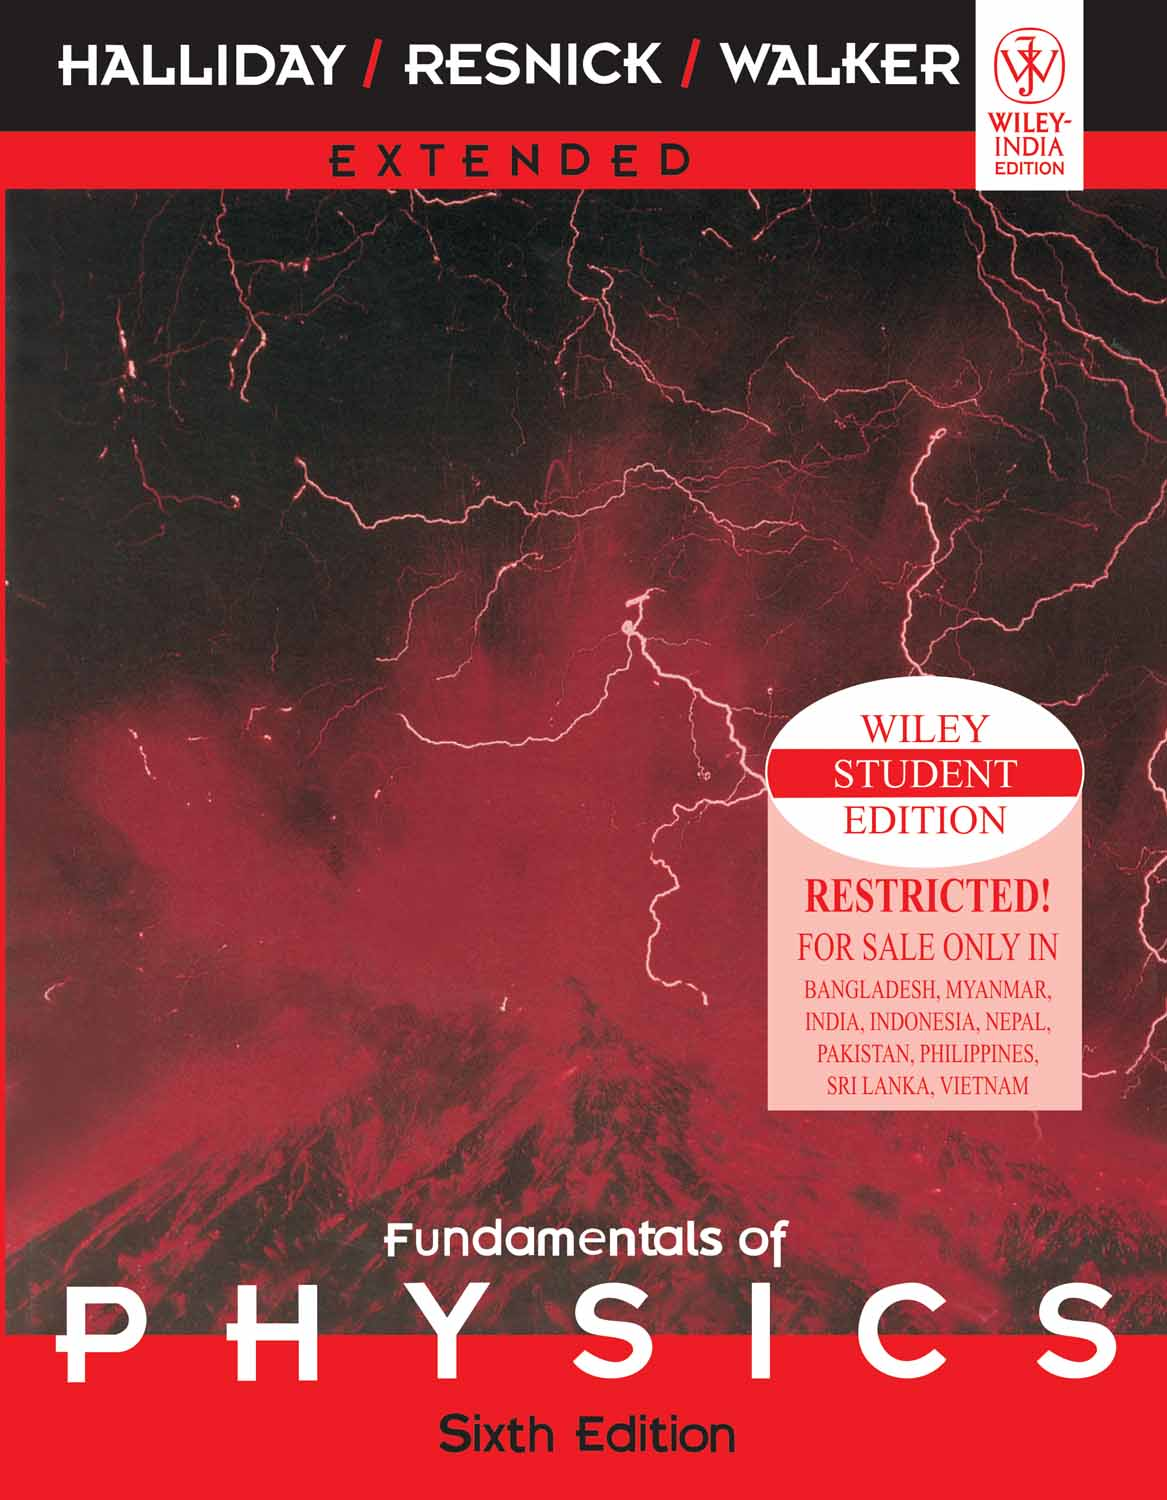 Fundamentals of physics all solution manual ebook array solution manual of physics and maths physics rh solutionmanualofphysics blogspot com fandeluxe Images